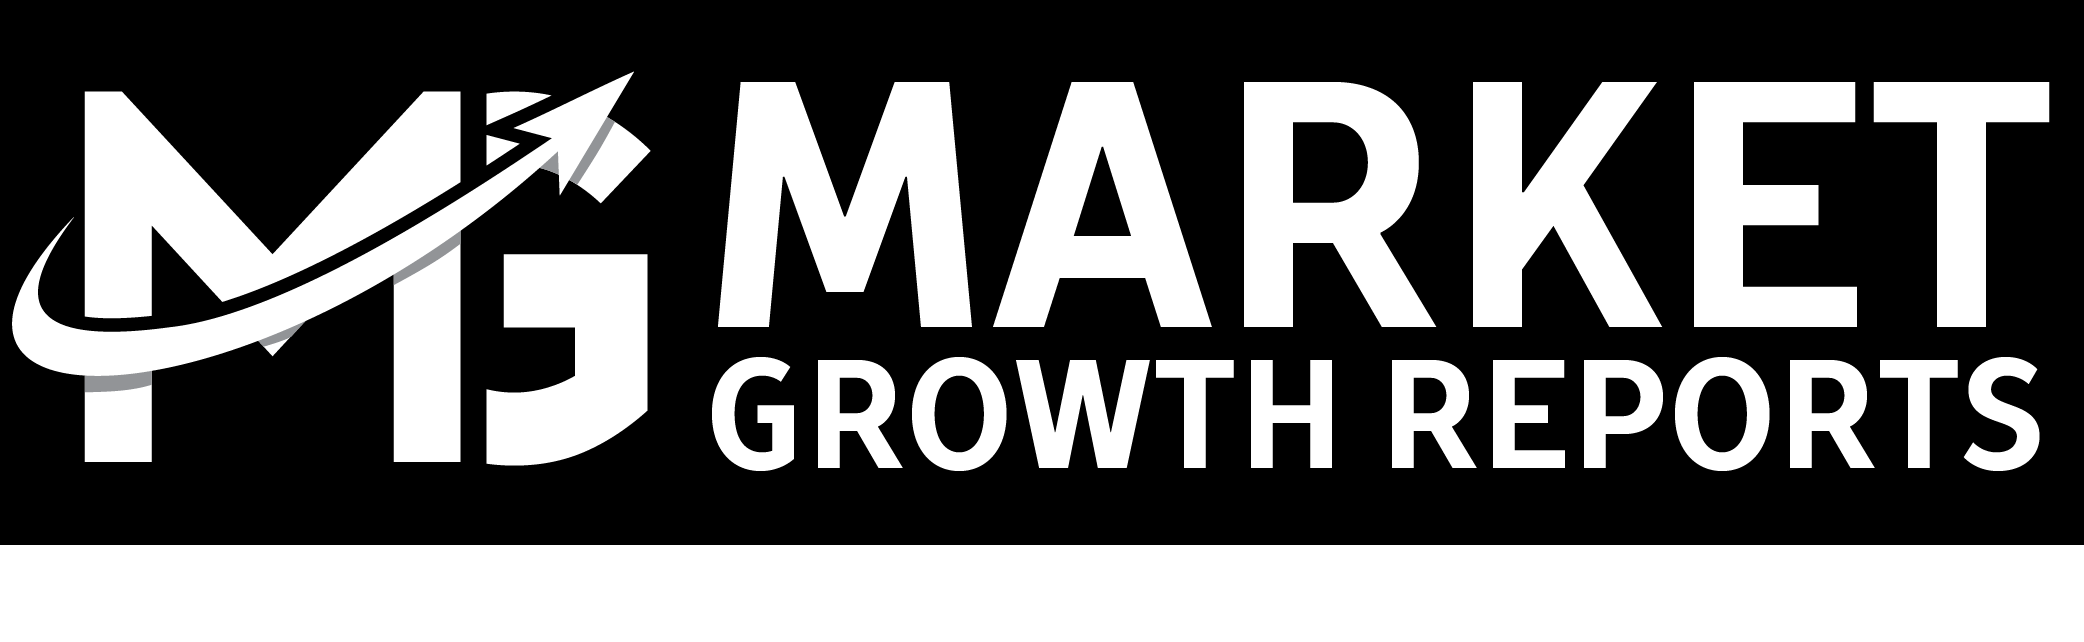 Busway-Bus Duct  Market Size, Growth Opportunities, Defination, Emerging Technologies, Trends,Growth, Segments, Landscape and Demandby way ofForecast to 2026 Research Reportwith the aid ofMarket Growth Reports